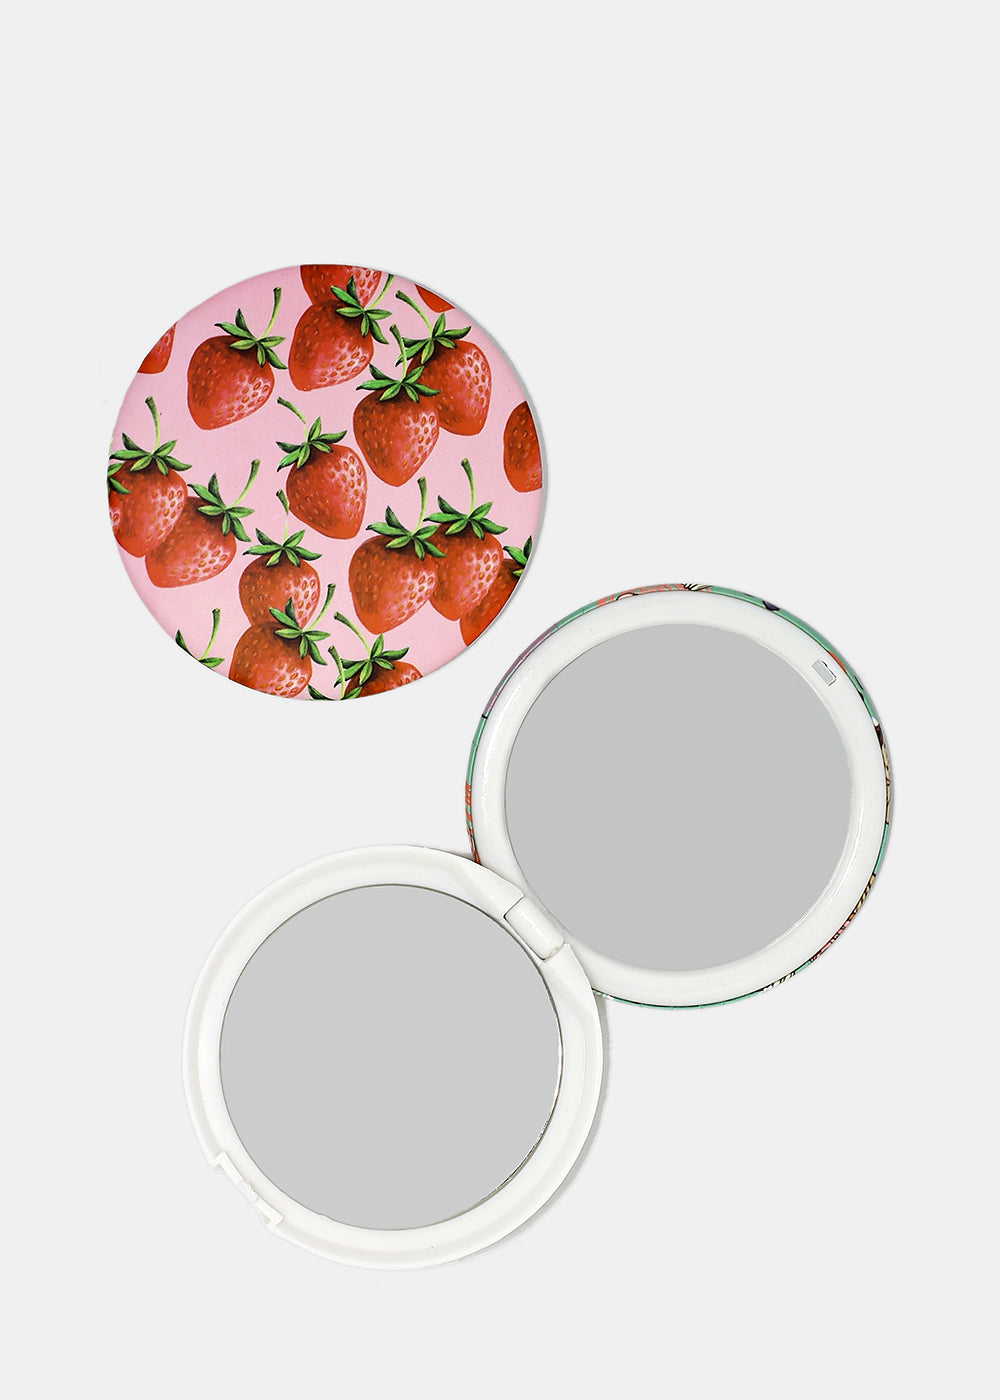 Cupcakes & Strawberries Pocket Mirrors